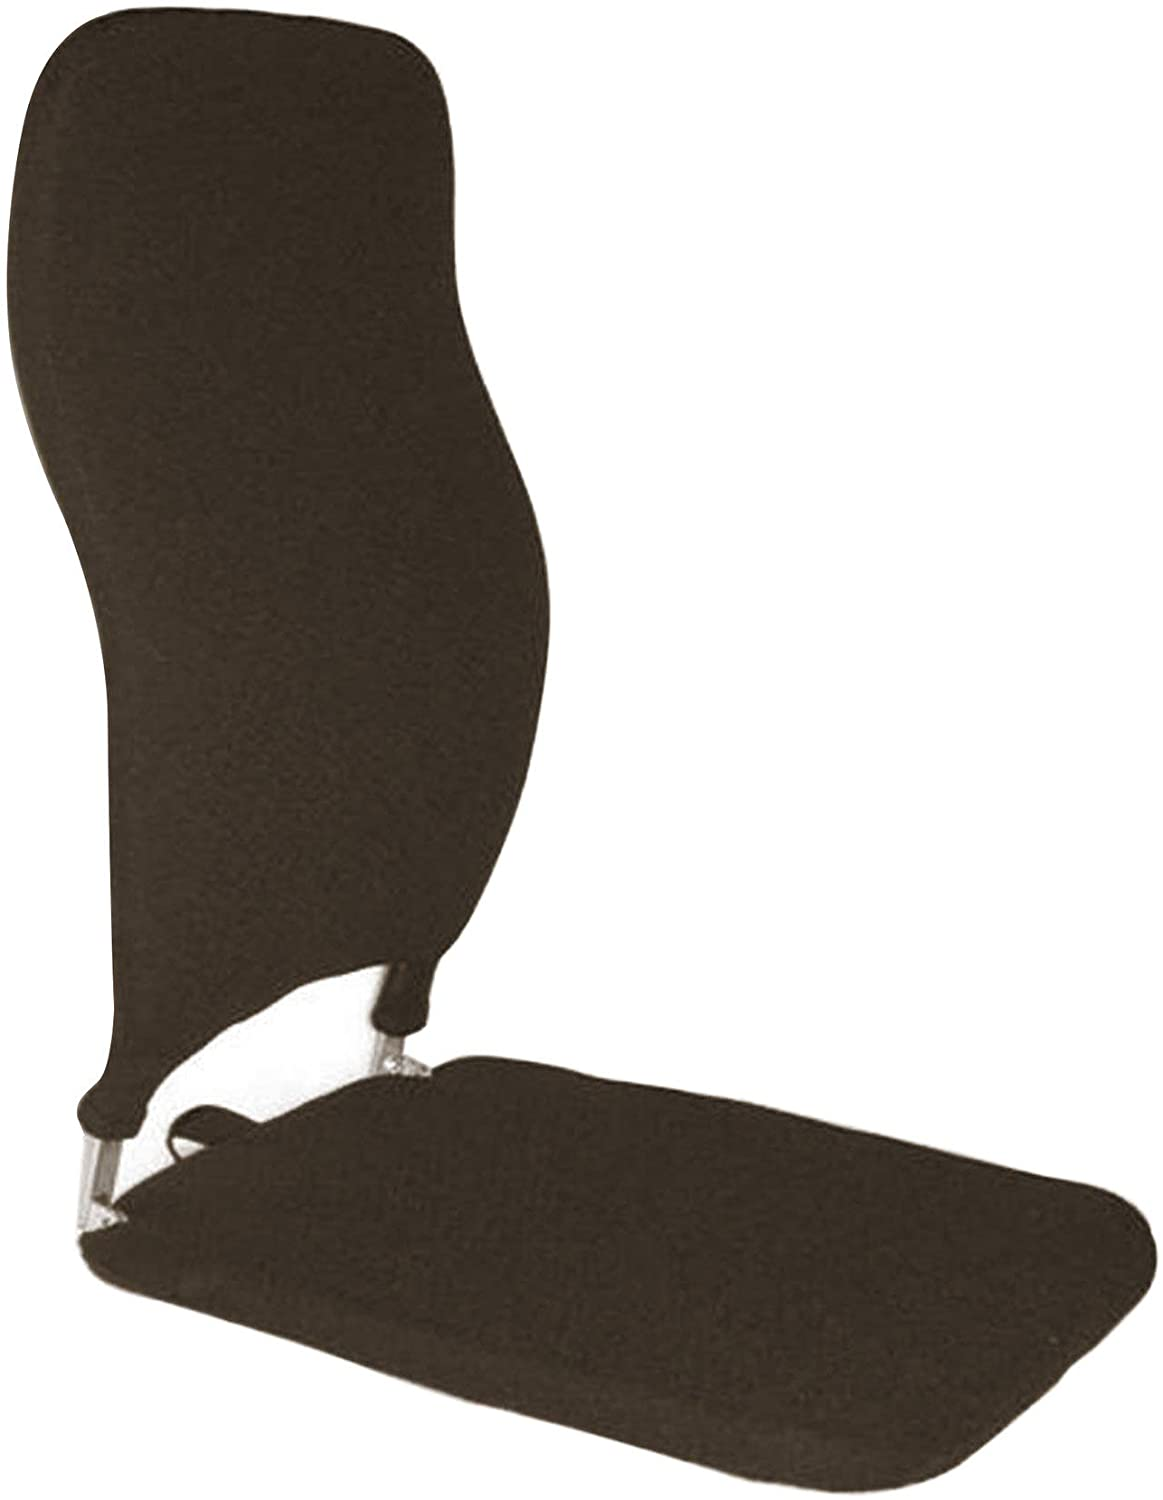 Q QUALITY BRAND COMPANY McCarty's Q-BRSCMCF2418-BRN 14 in. Wide Memory Foam Tall Sacro-Ease Ergonomic Seat Support 18x14x24 in. Brown Color